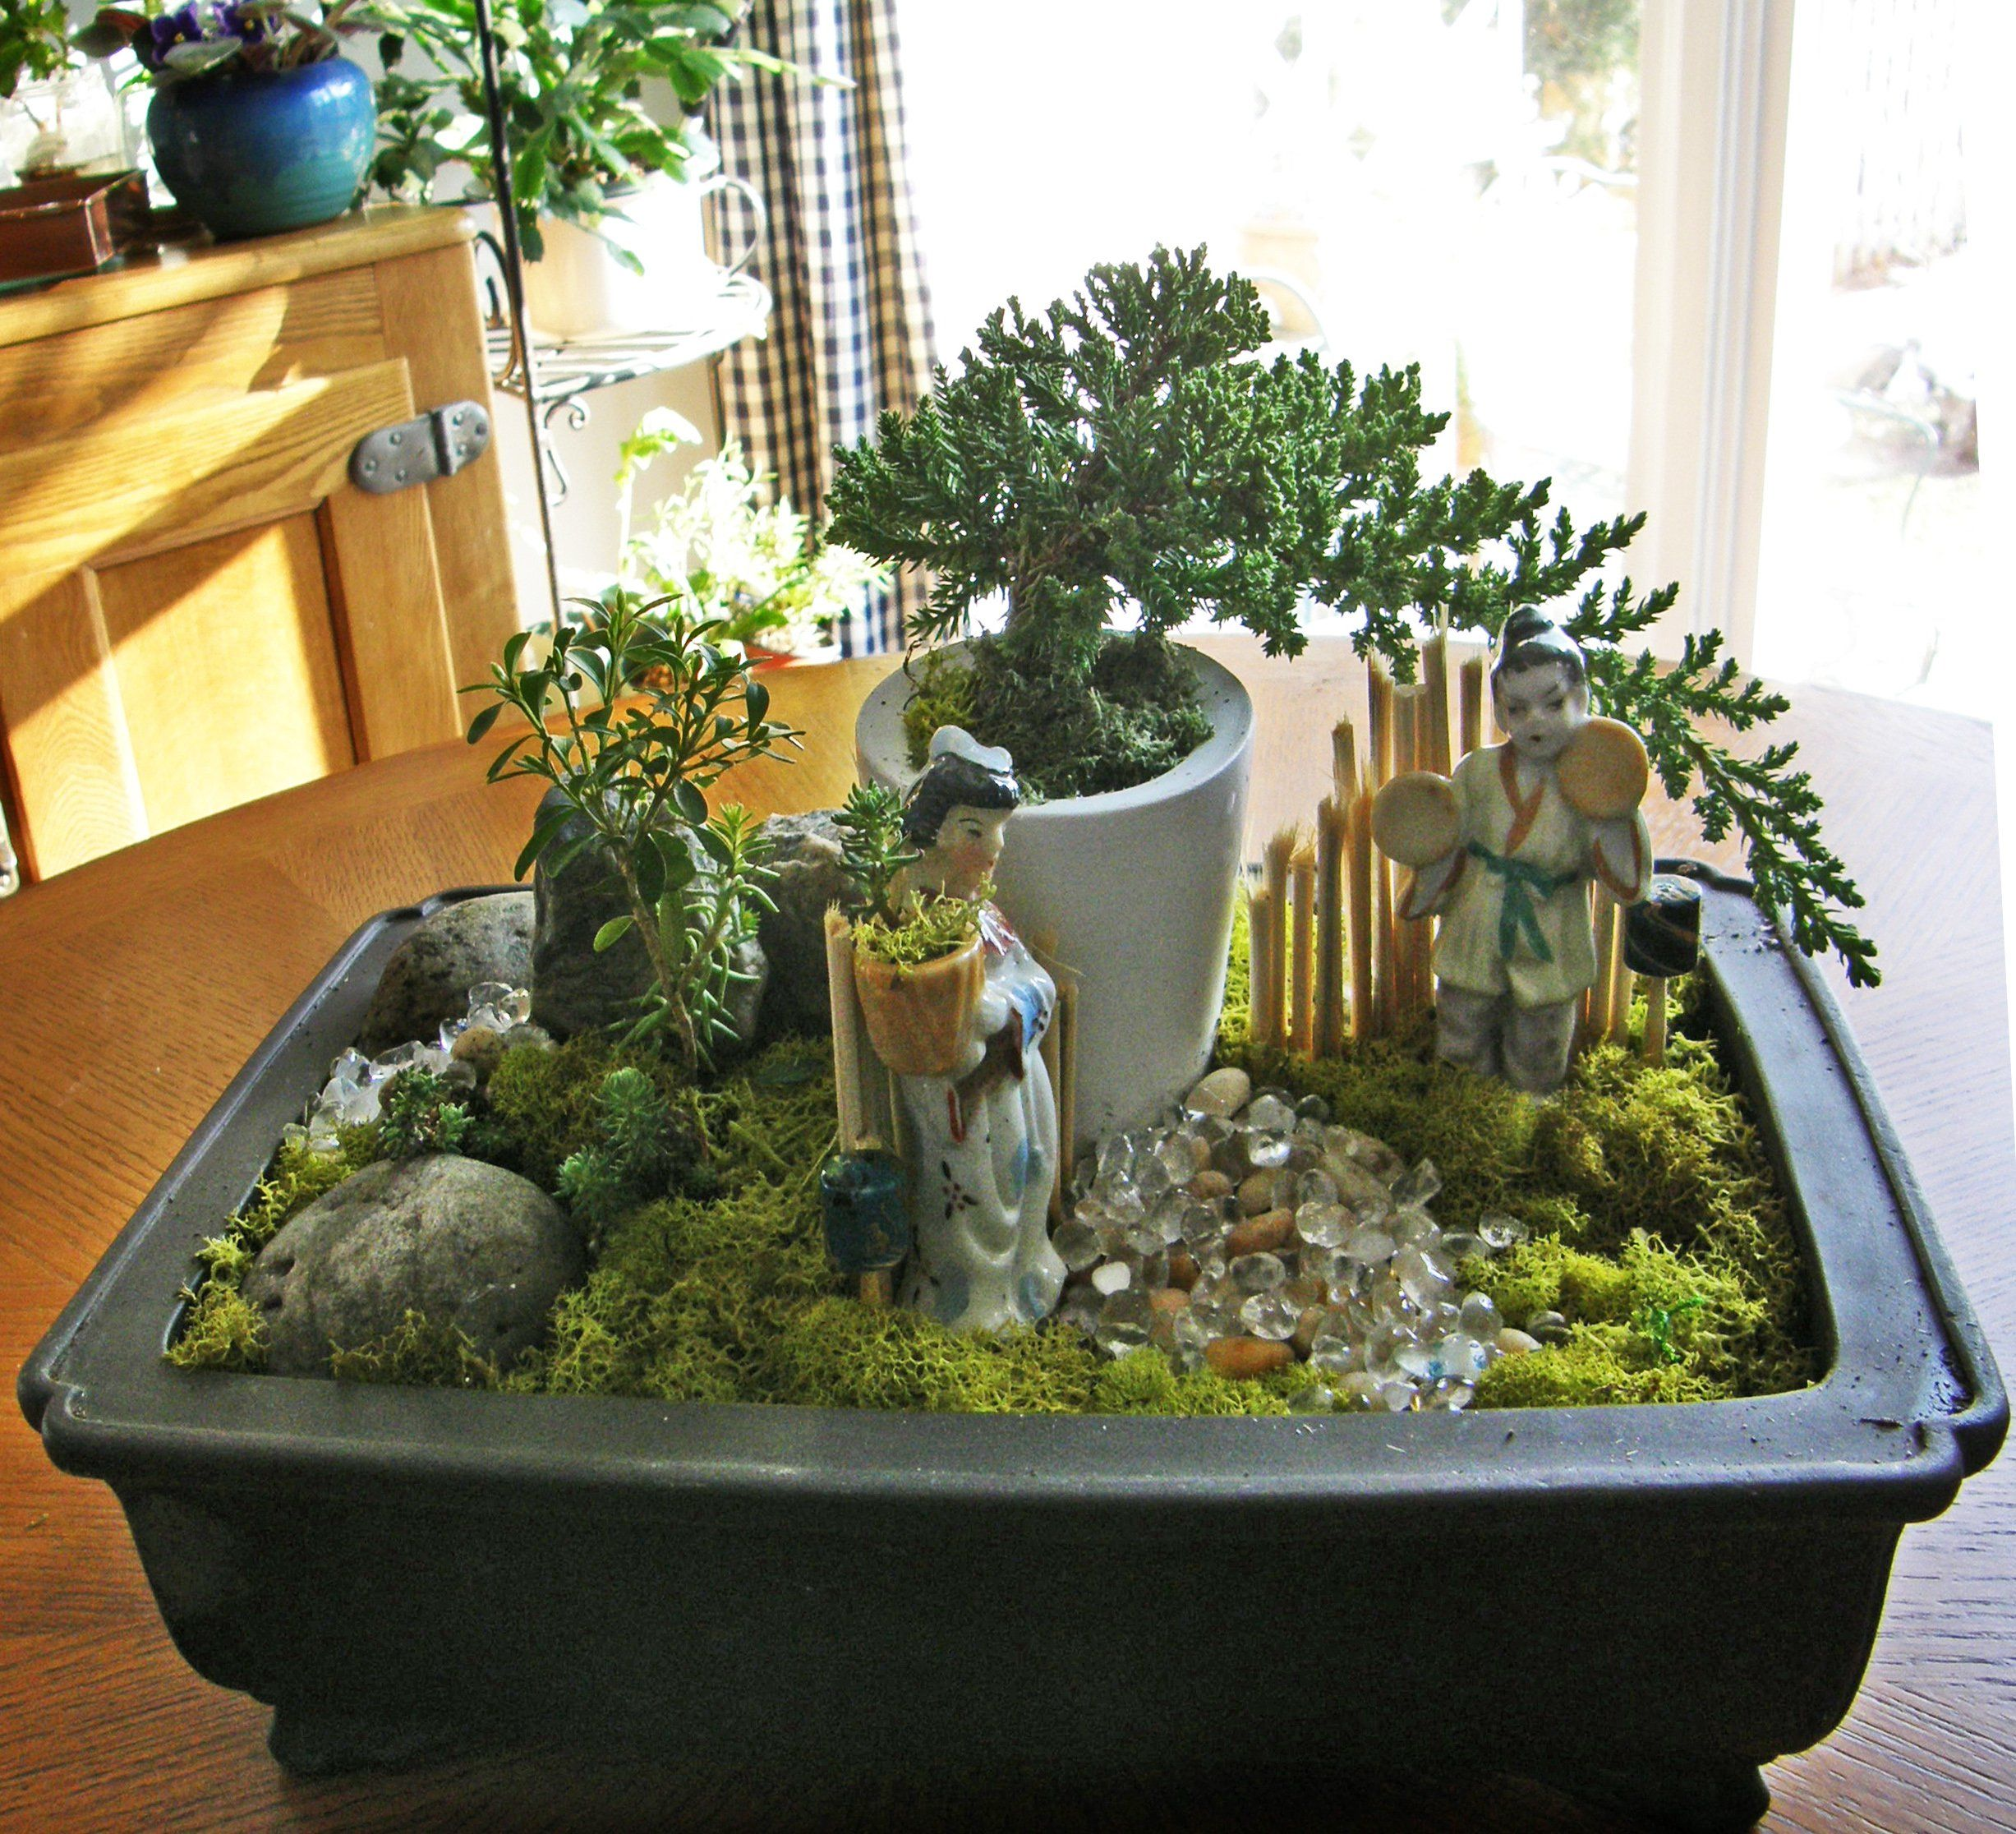 How To Make A Bonsai Dish Garden Bonsai Pinterest Dish